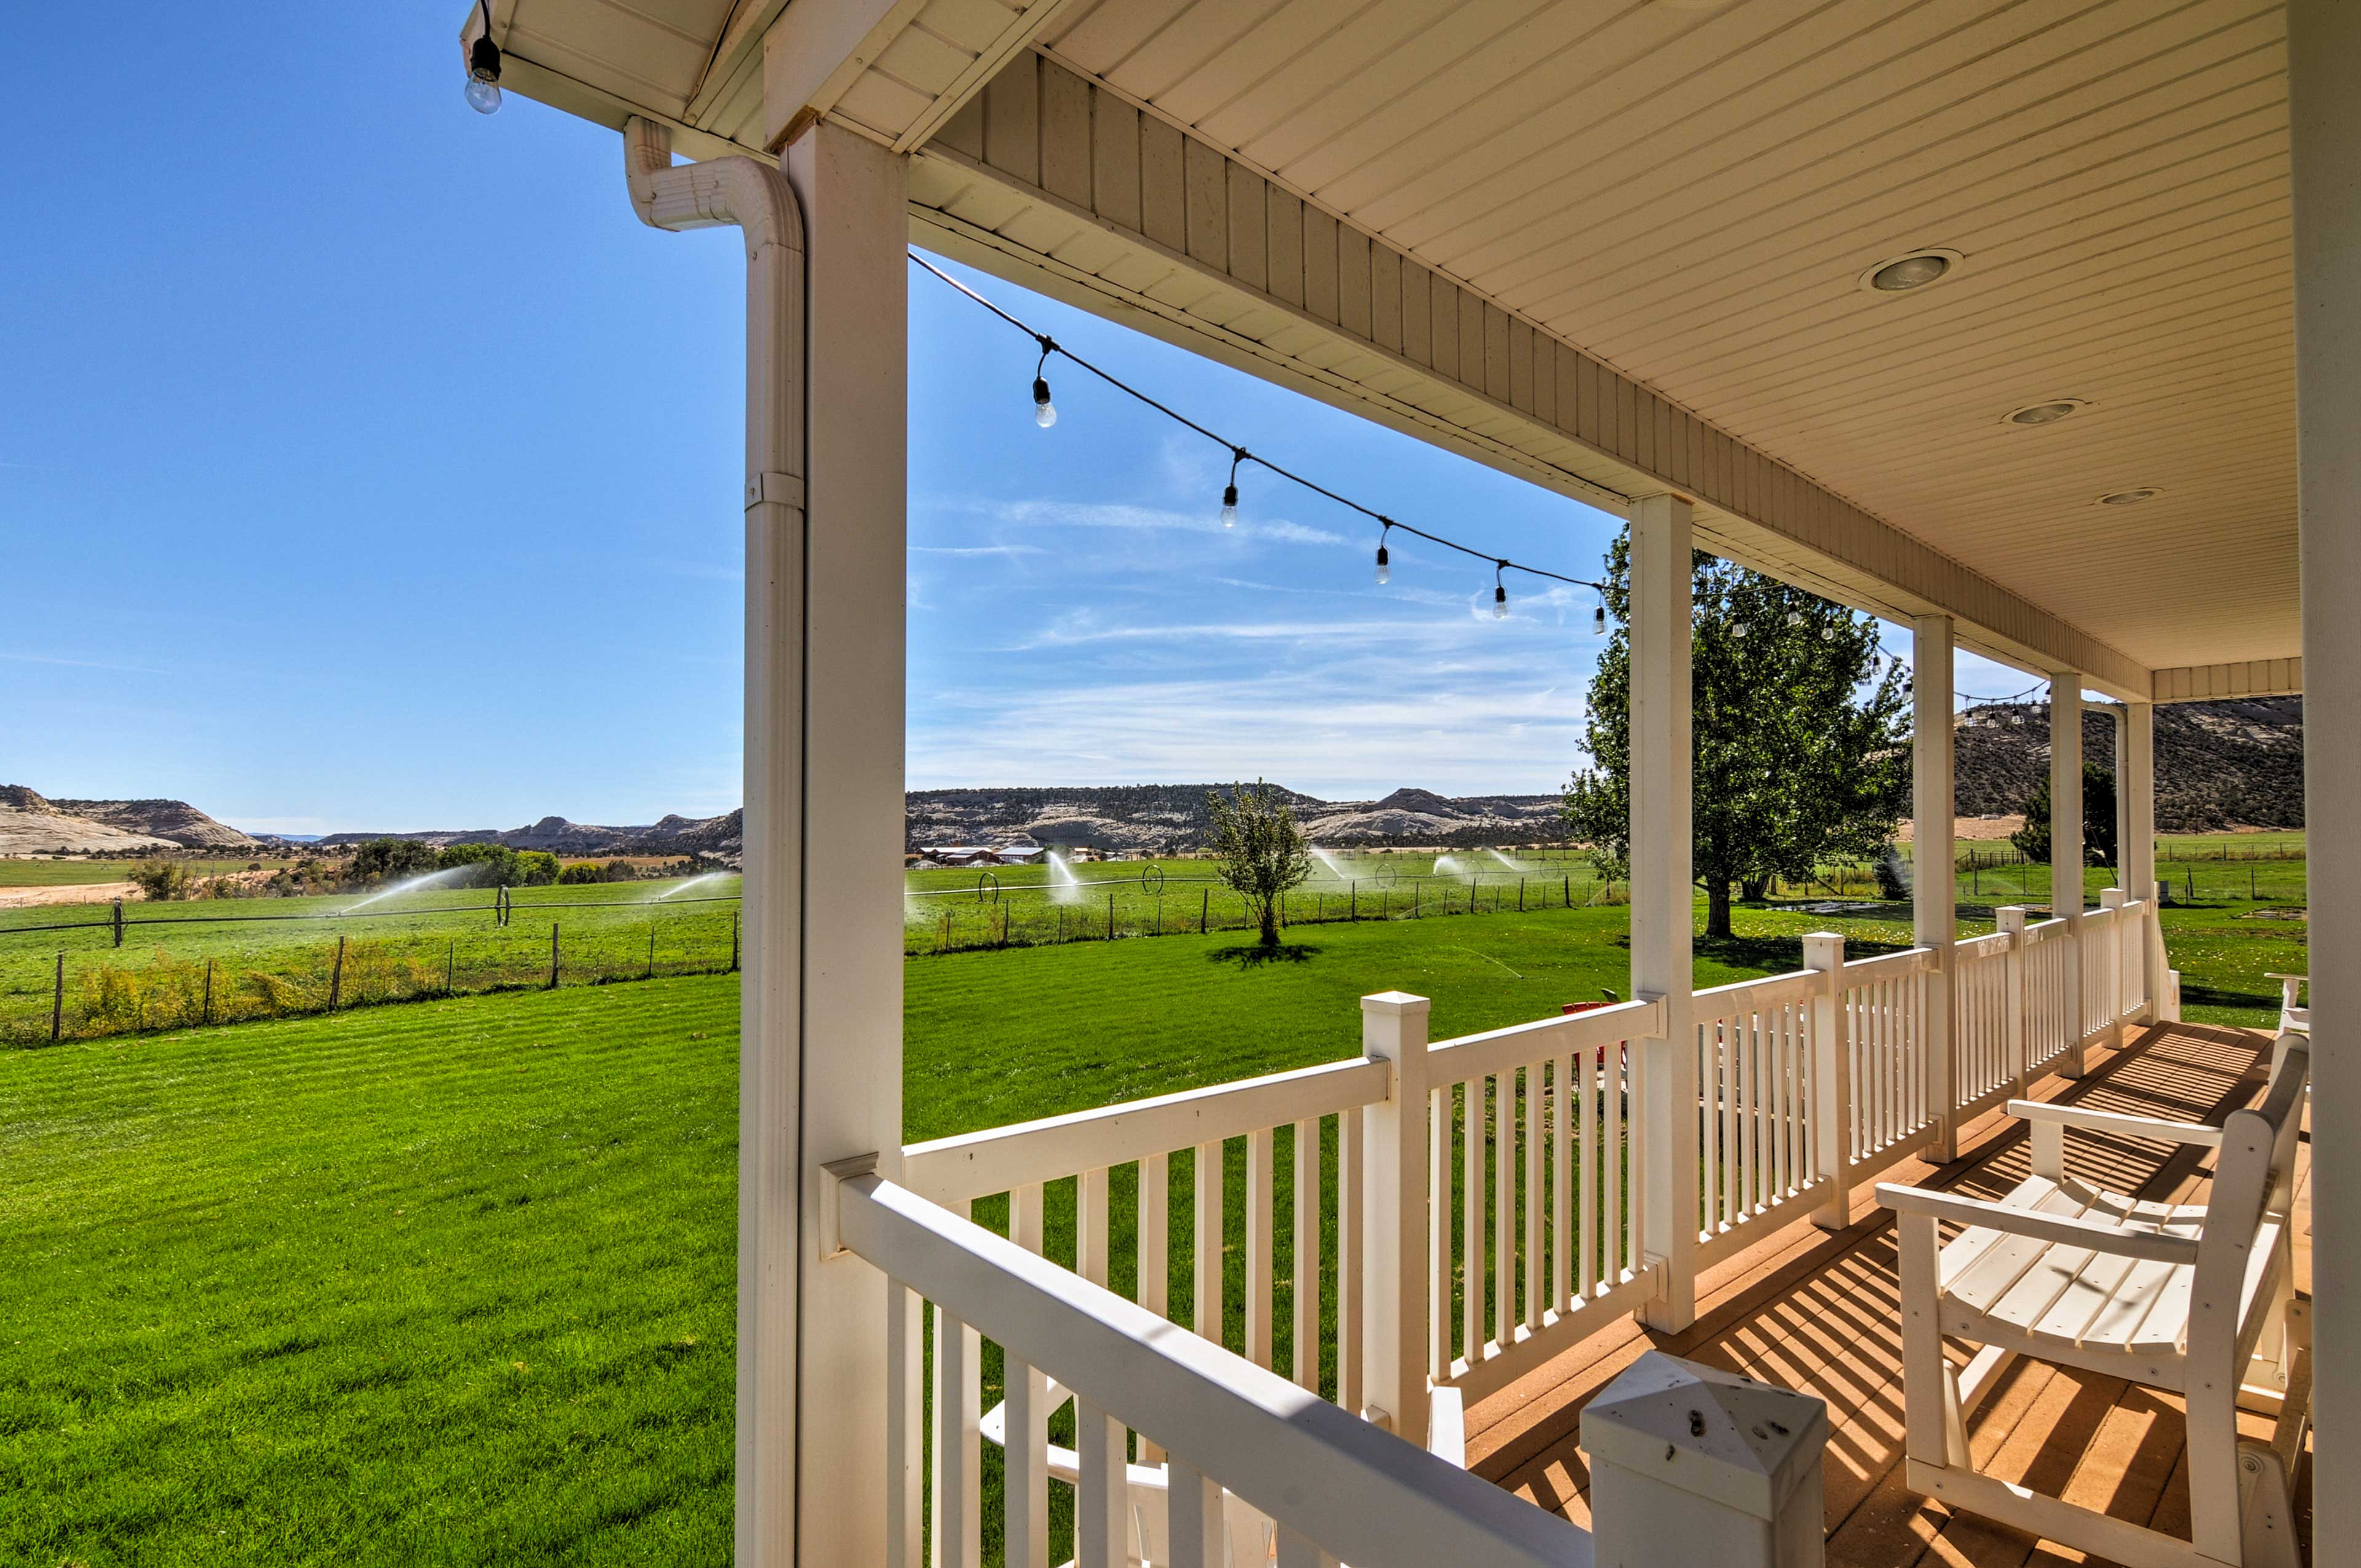 With 6 bedrooms & 4.5 baths, up to 12 guests can vacation here!